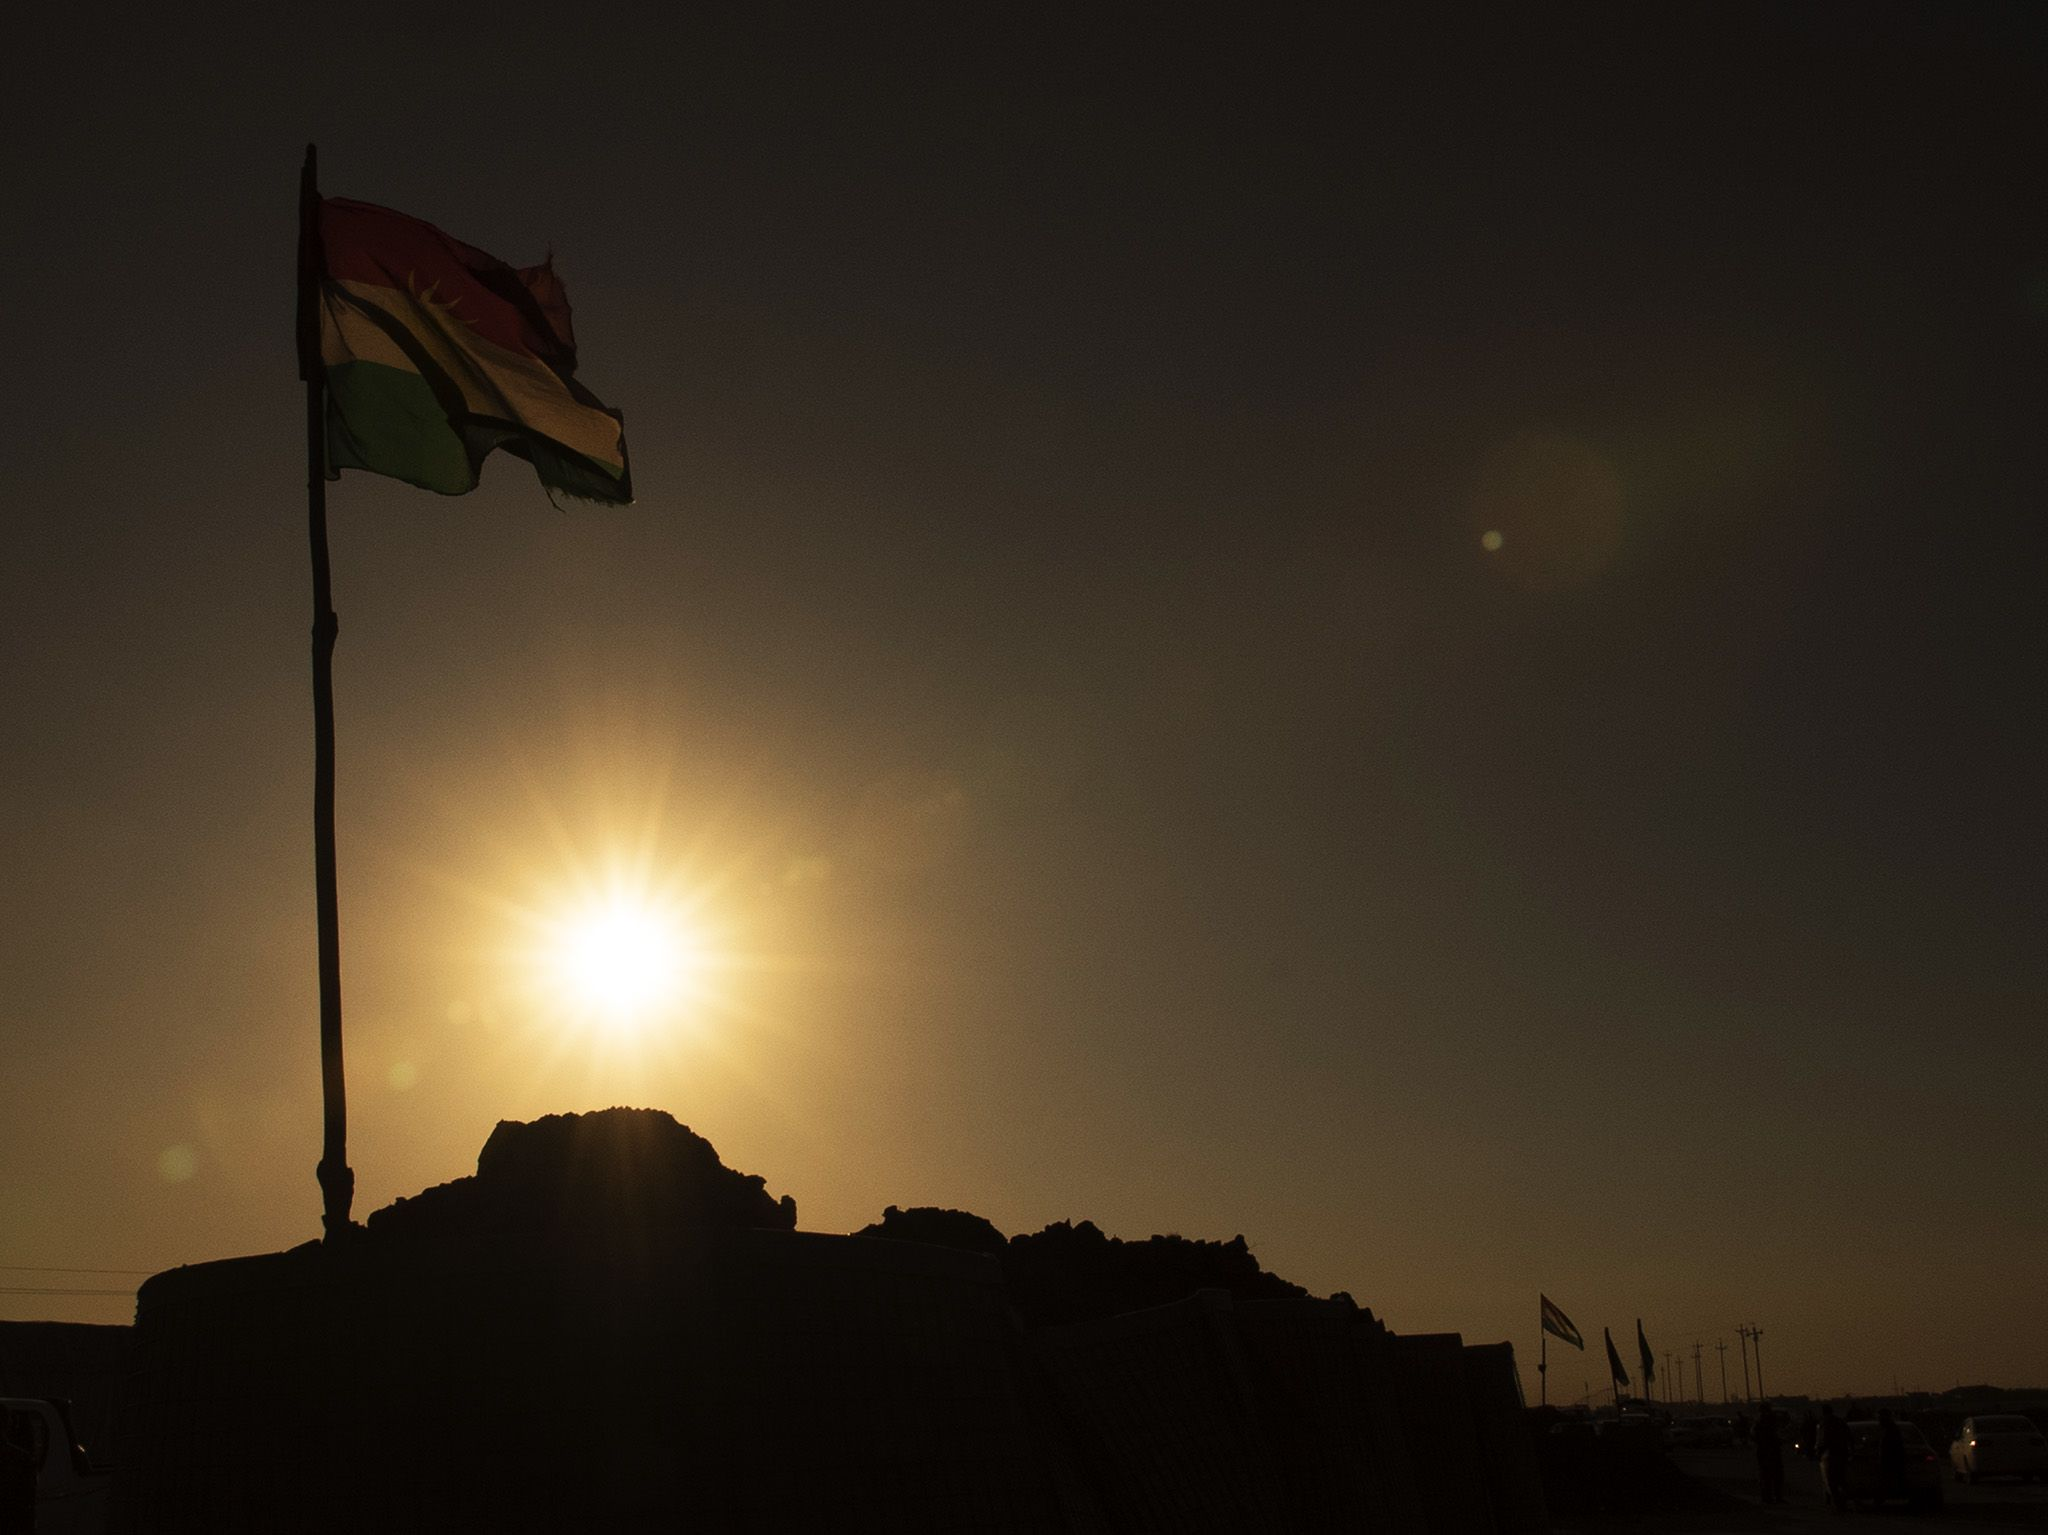 Mosul, Iraq:  A Peshmerga flag in the sun.  This image is from Chain of Command. [Photo of the day - February 2018]